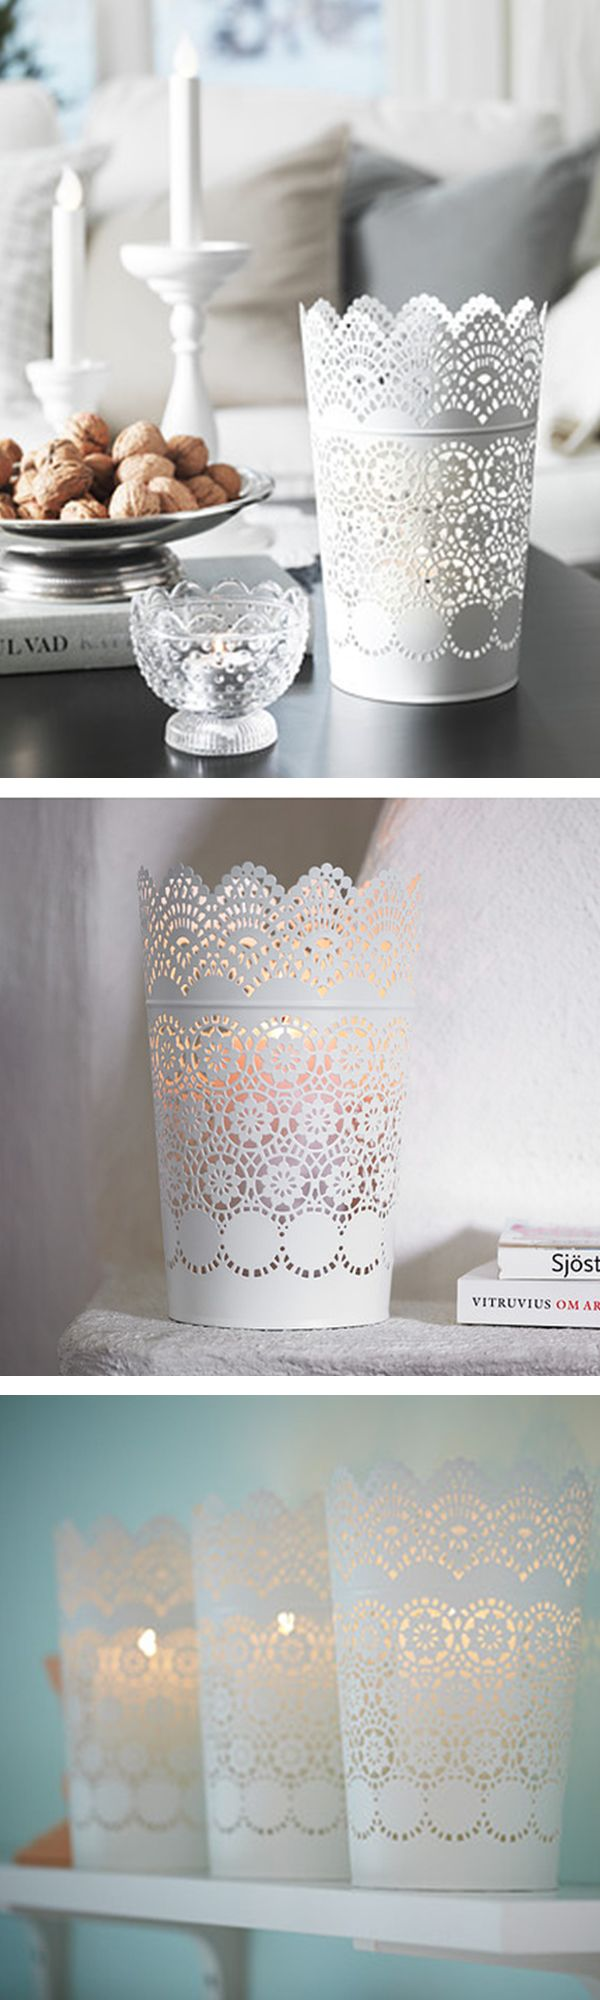 IKEA Fan Favorite: SKURAR candle holder. The warm light from the candle shines decoratively through the lace pattern on the lantern.